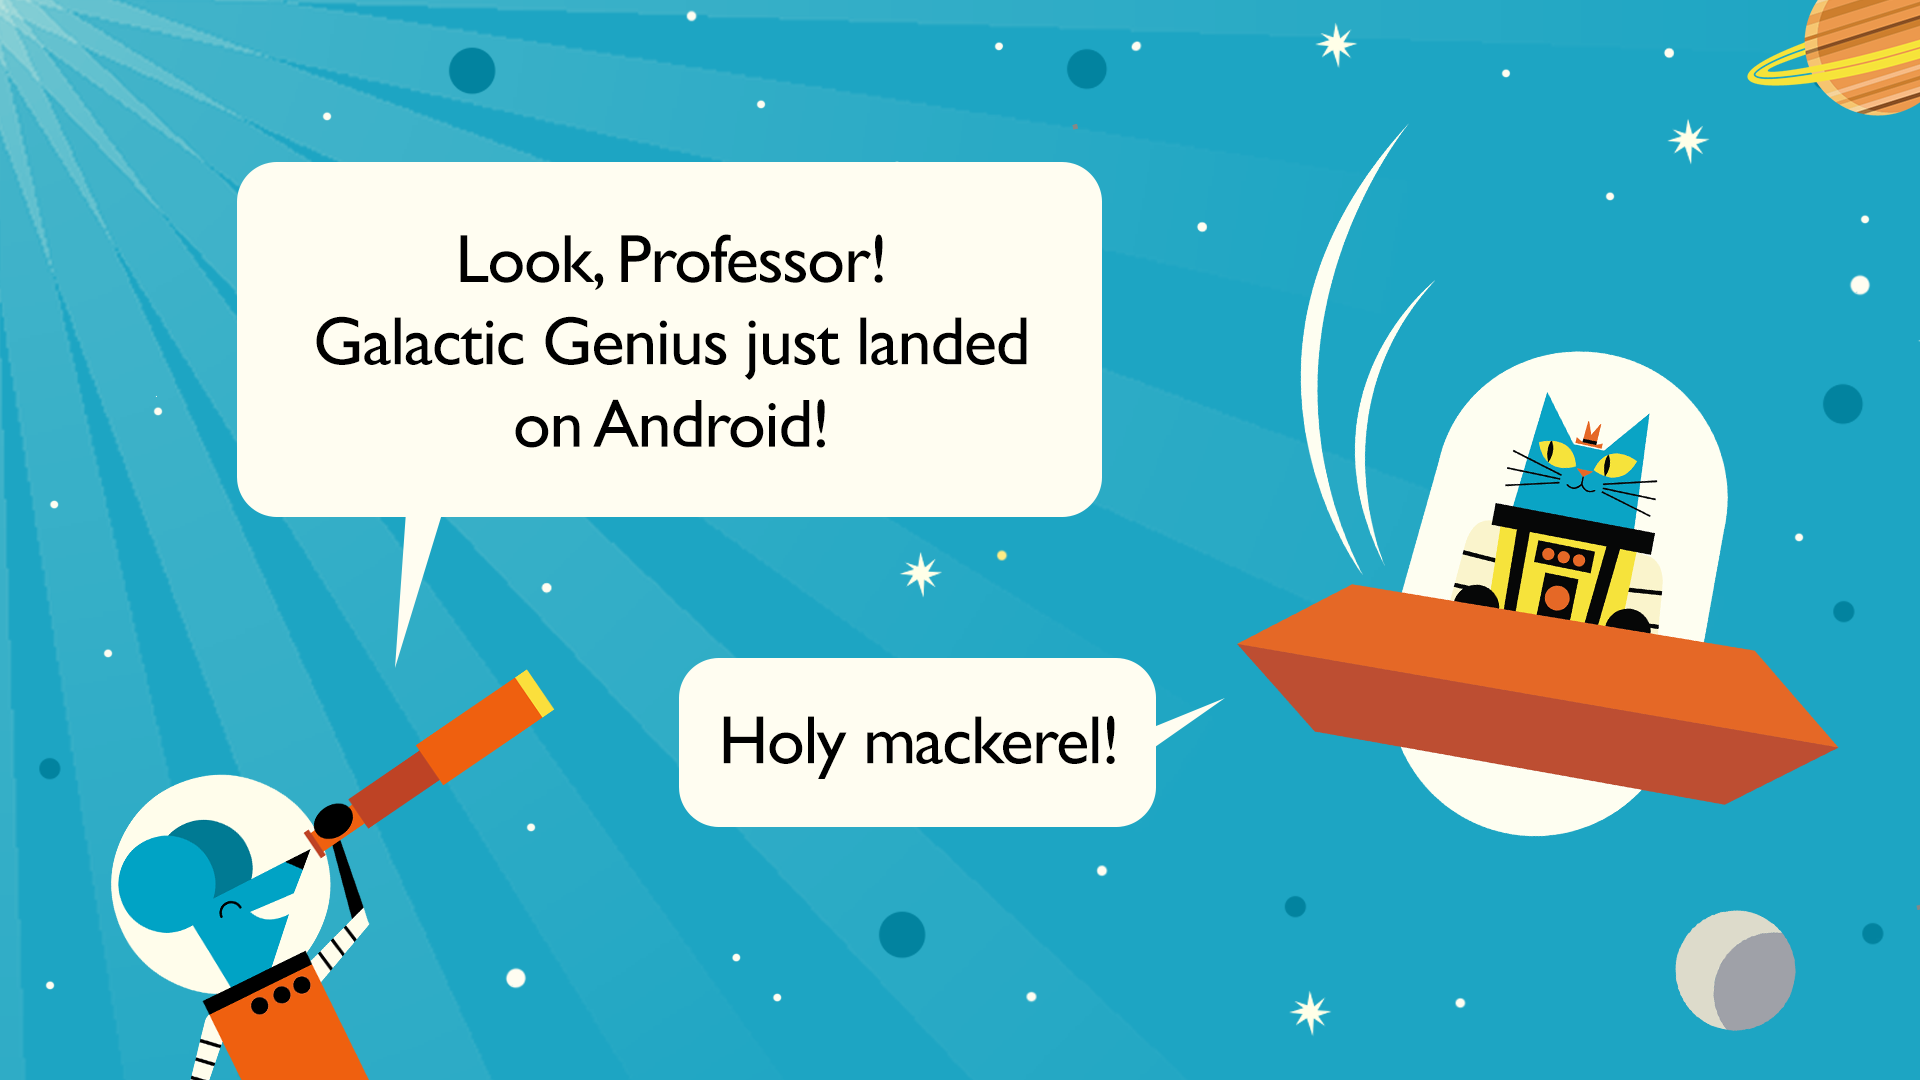 Galactic Genius Android Launch